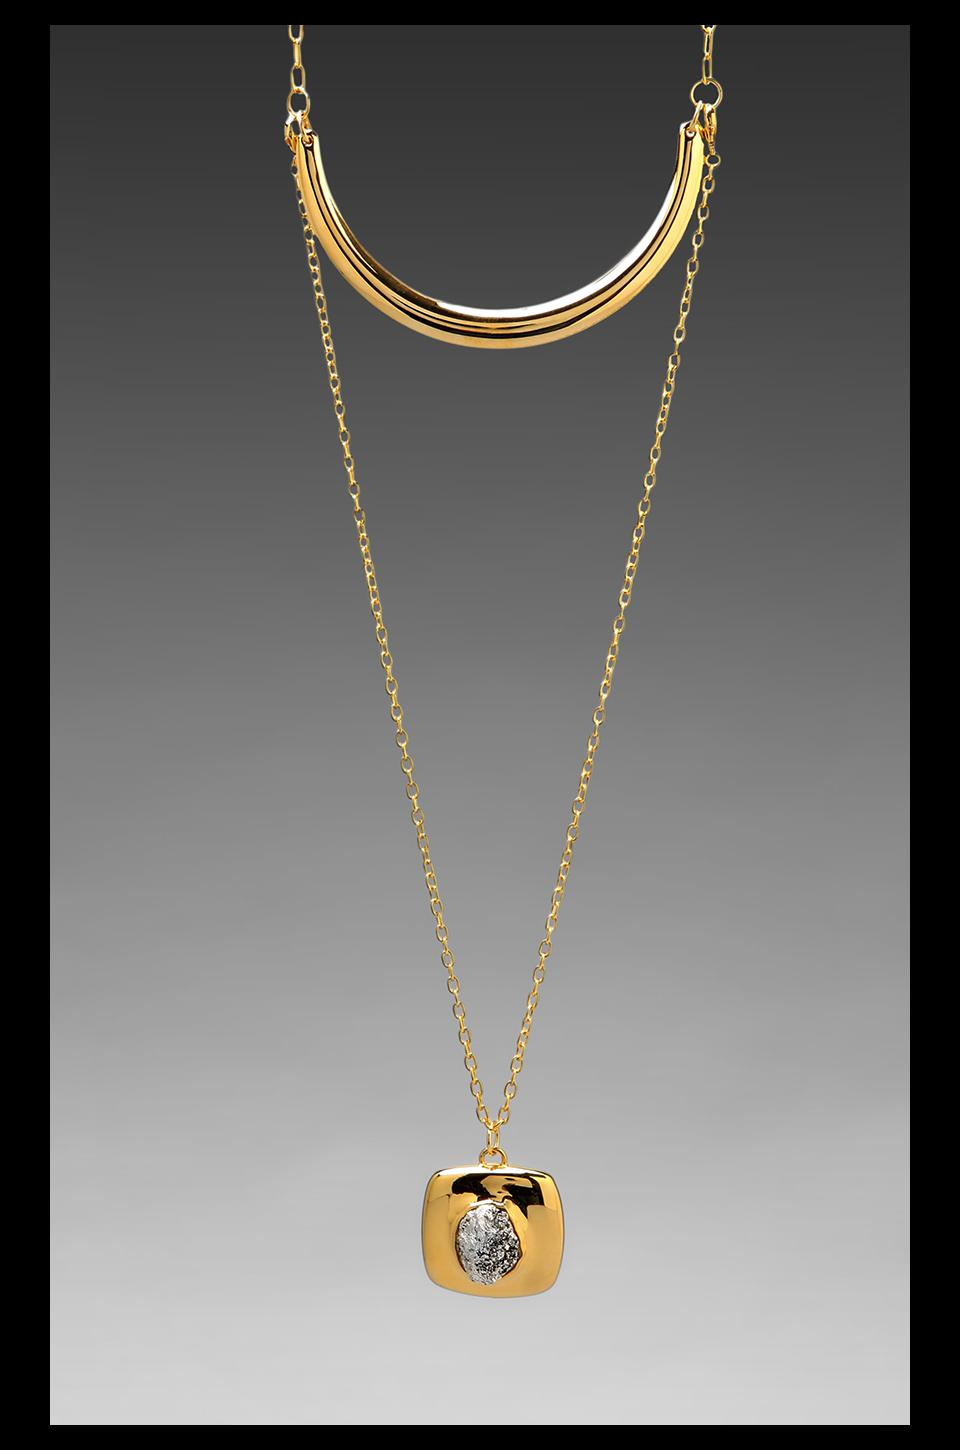 Roman Luxe Square Nugget Necklace in Gold